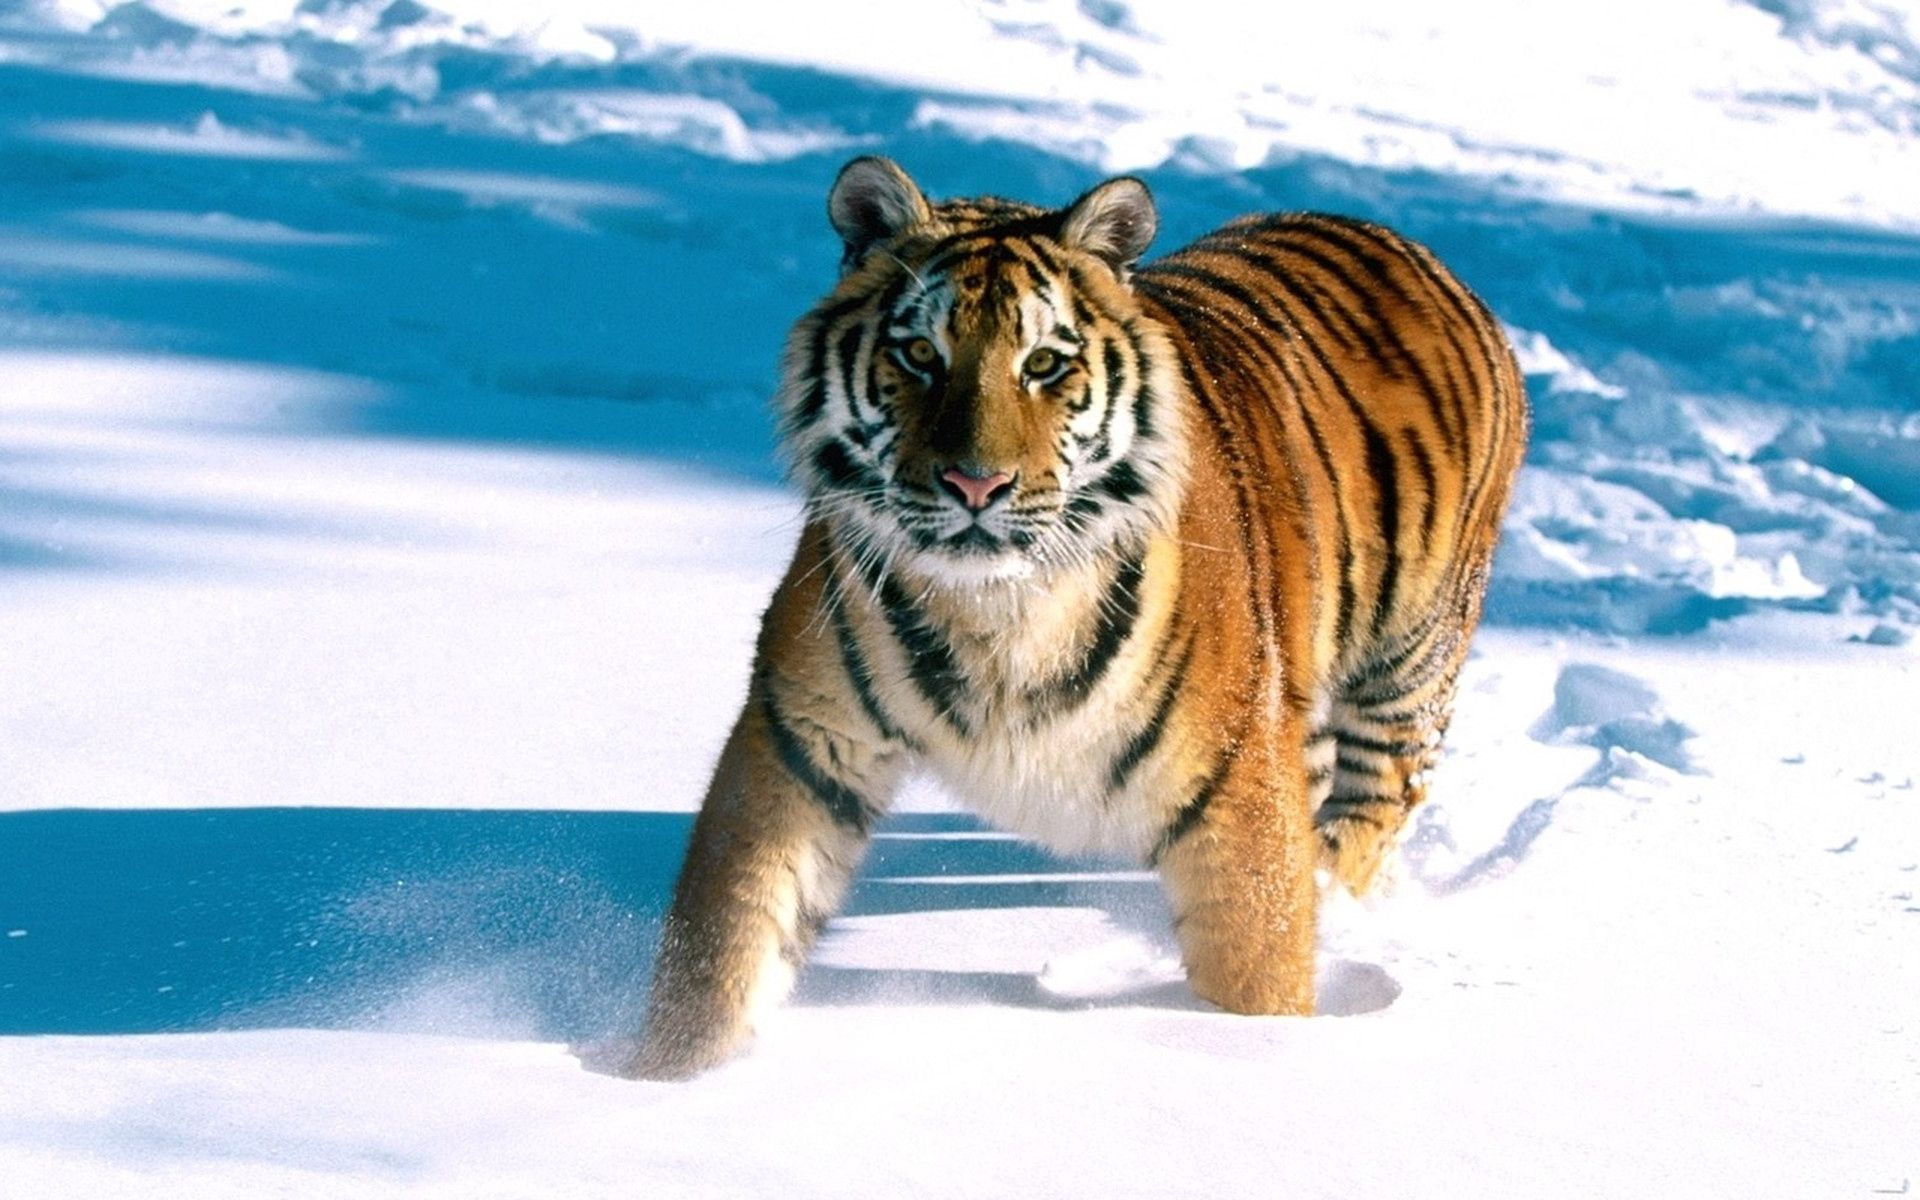 103389 download wallpaper Animals, Tiger, Snow, Run Away, Run, Predator screensavers and pictures for free